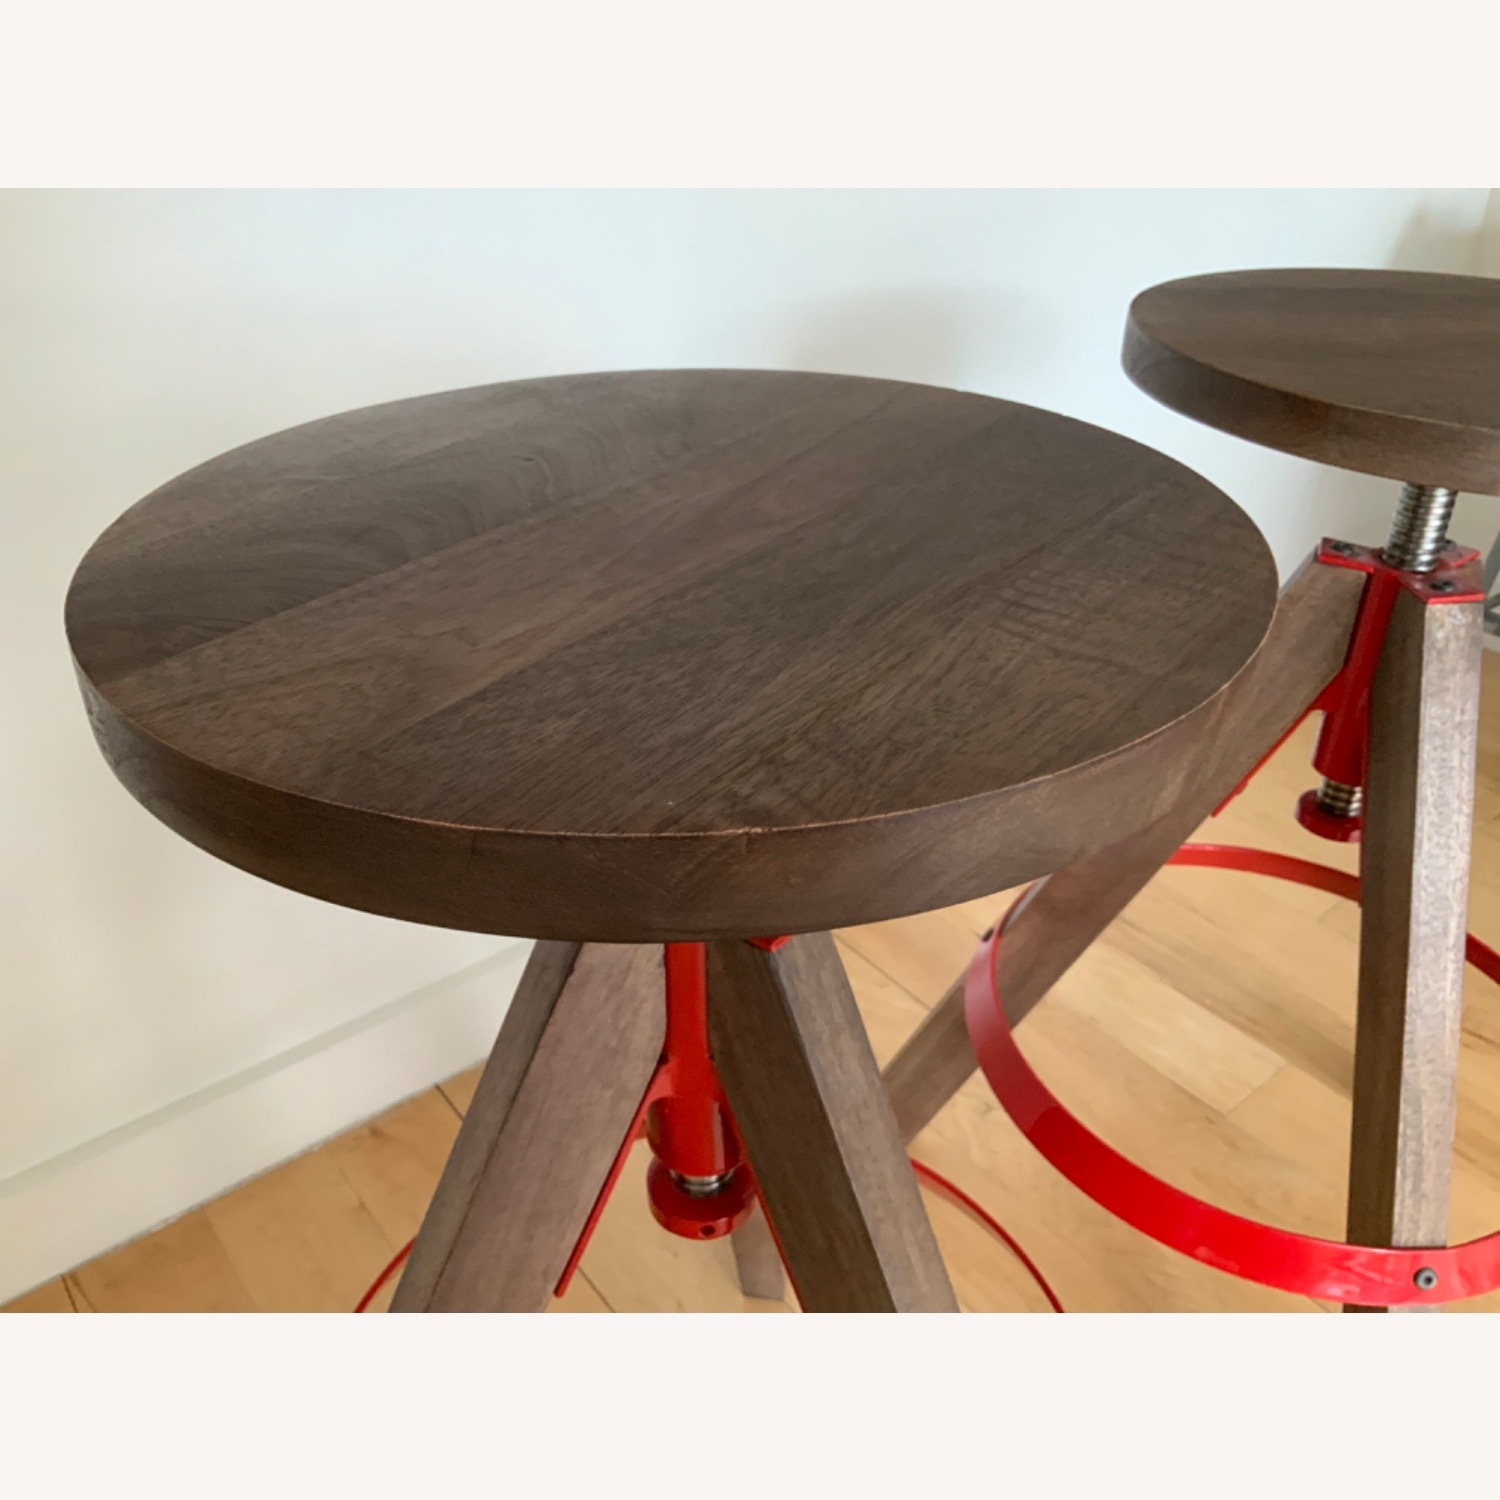 CB2 Height Adjustable Counter Stools - image-3